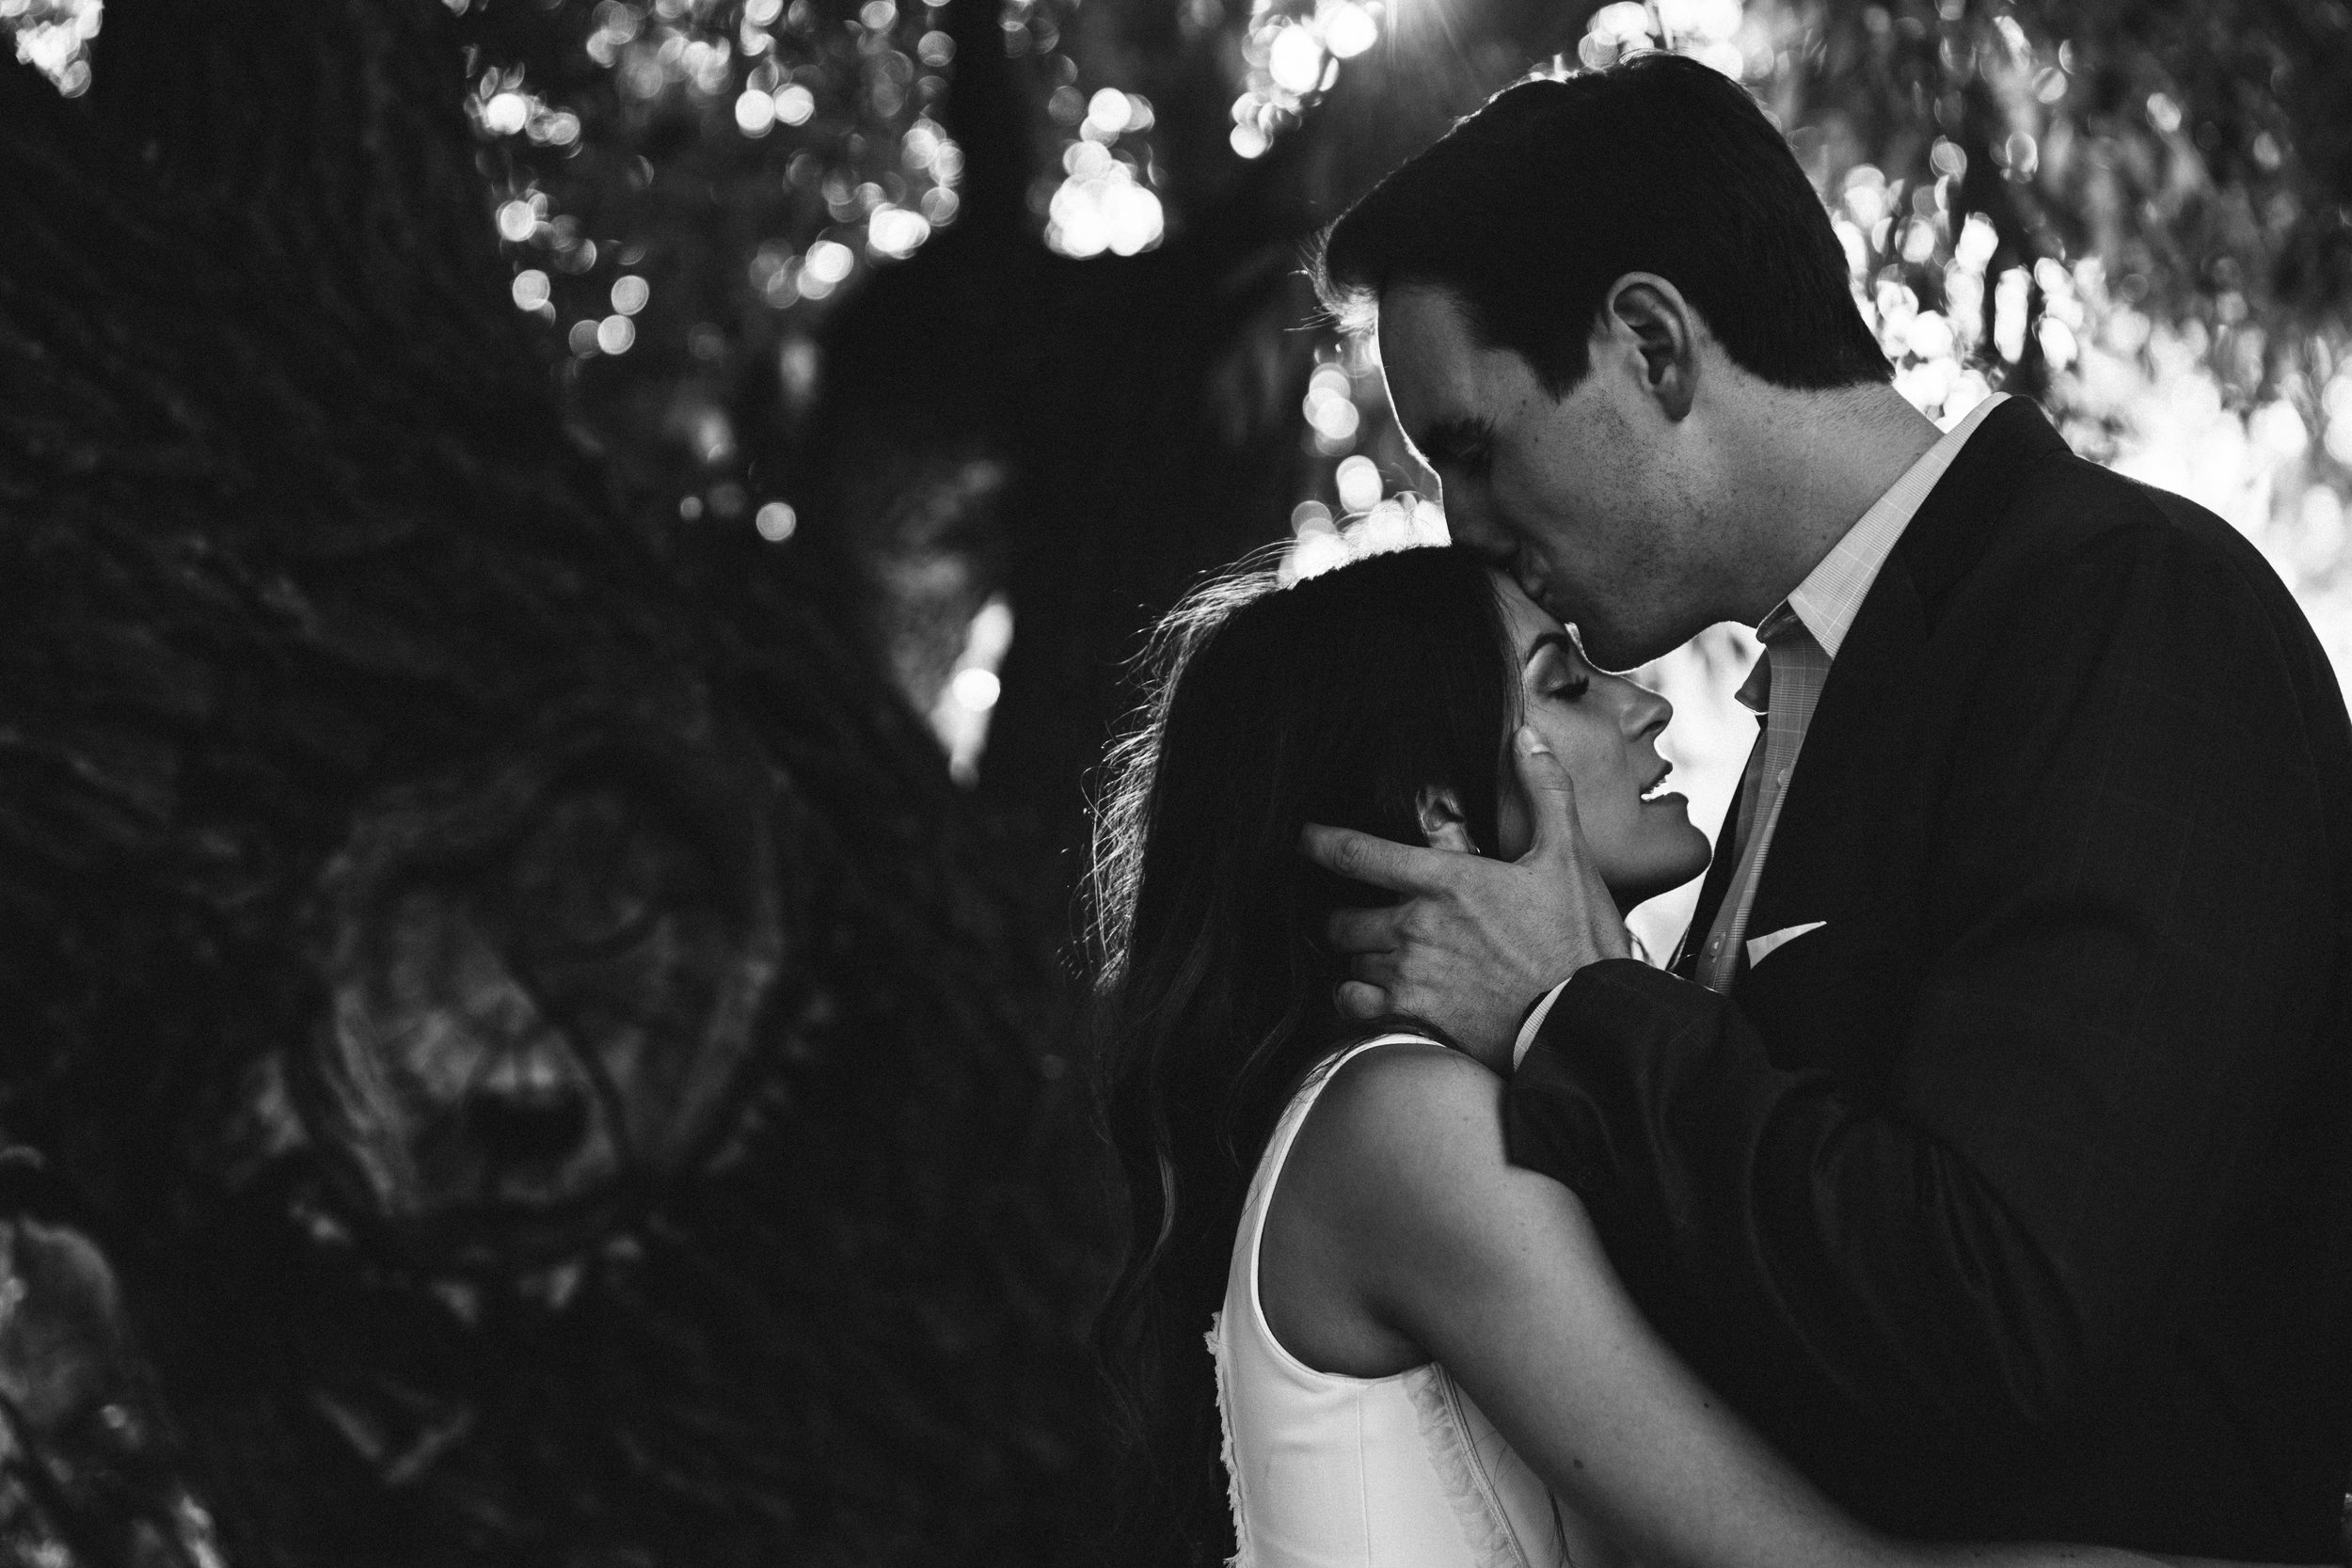 Steamboat_Wedding Photography_Forget Me Not Media_Steamboat_Portrait_Yampa River-12.jpg